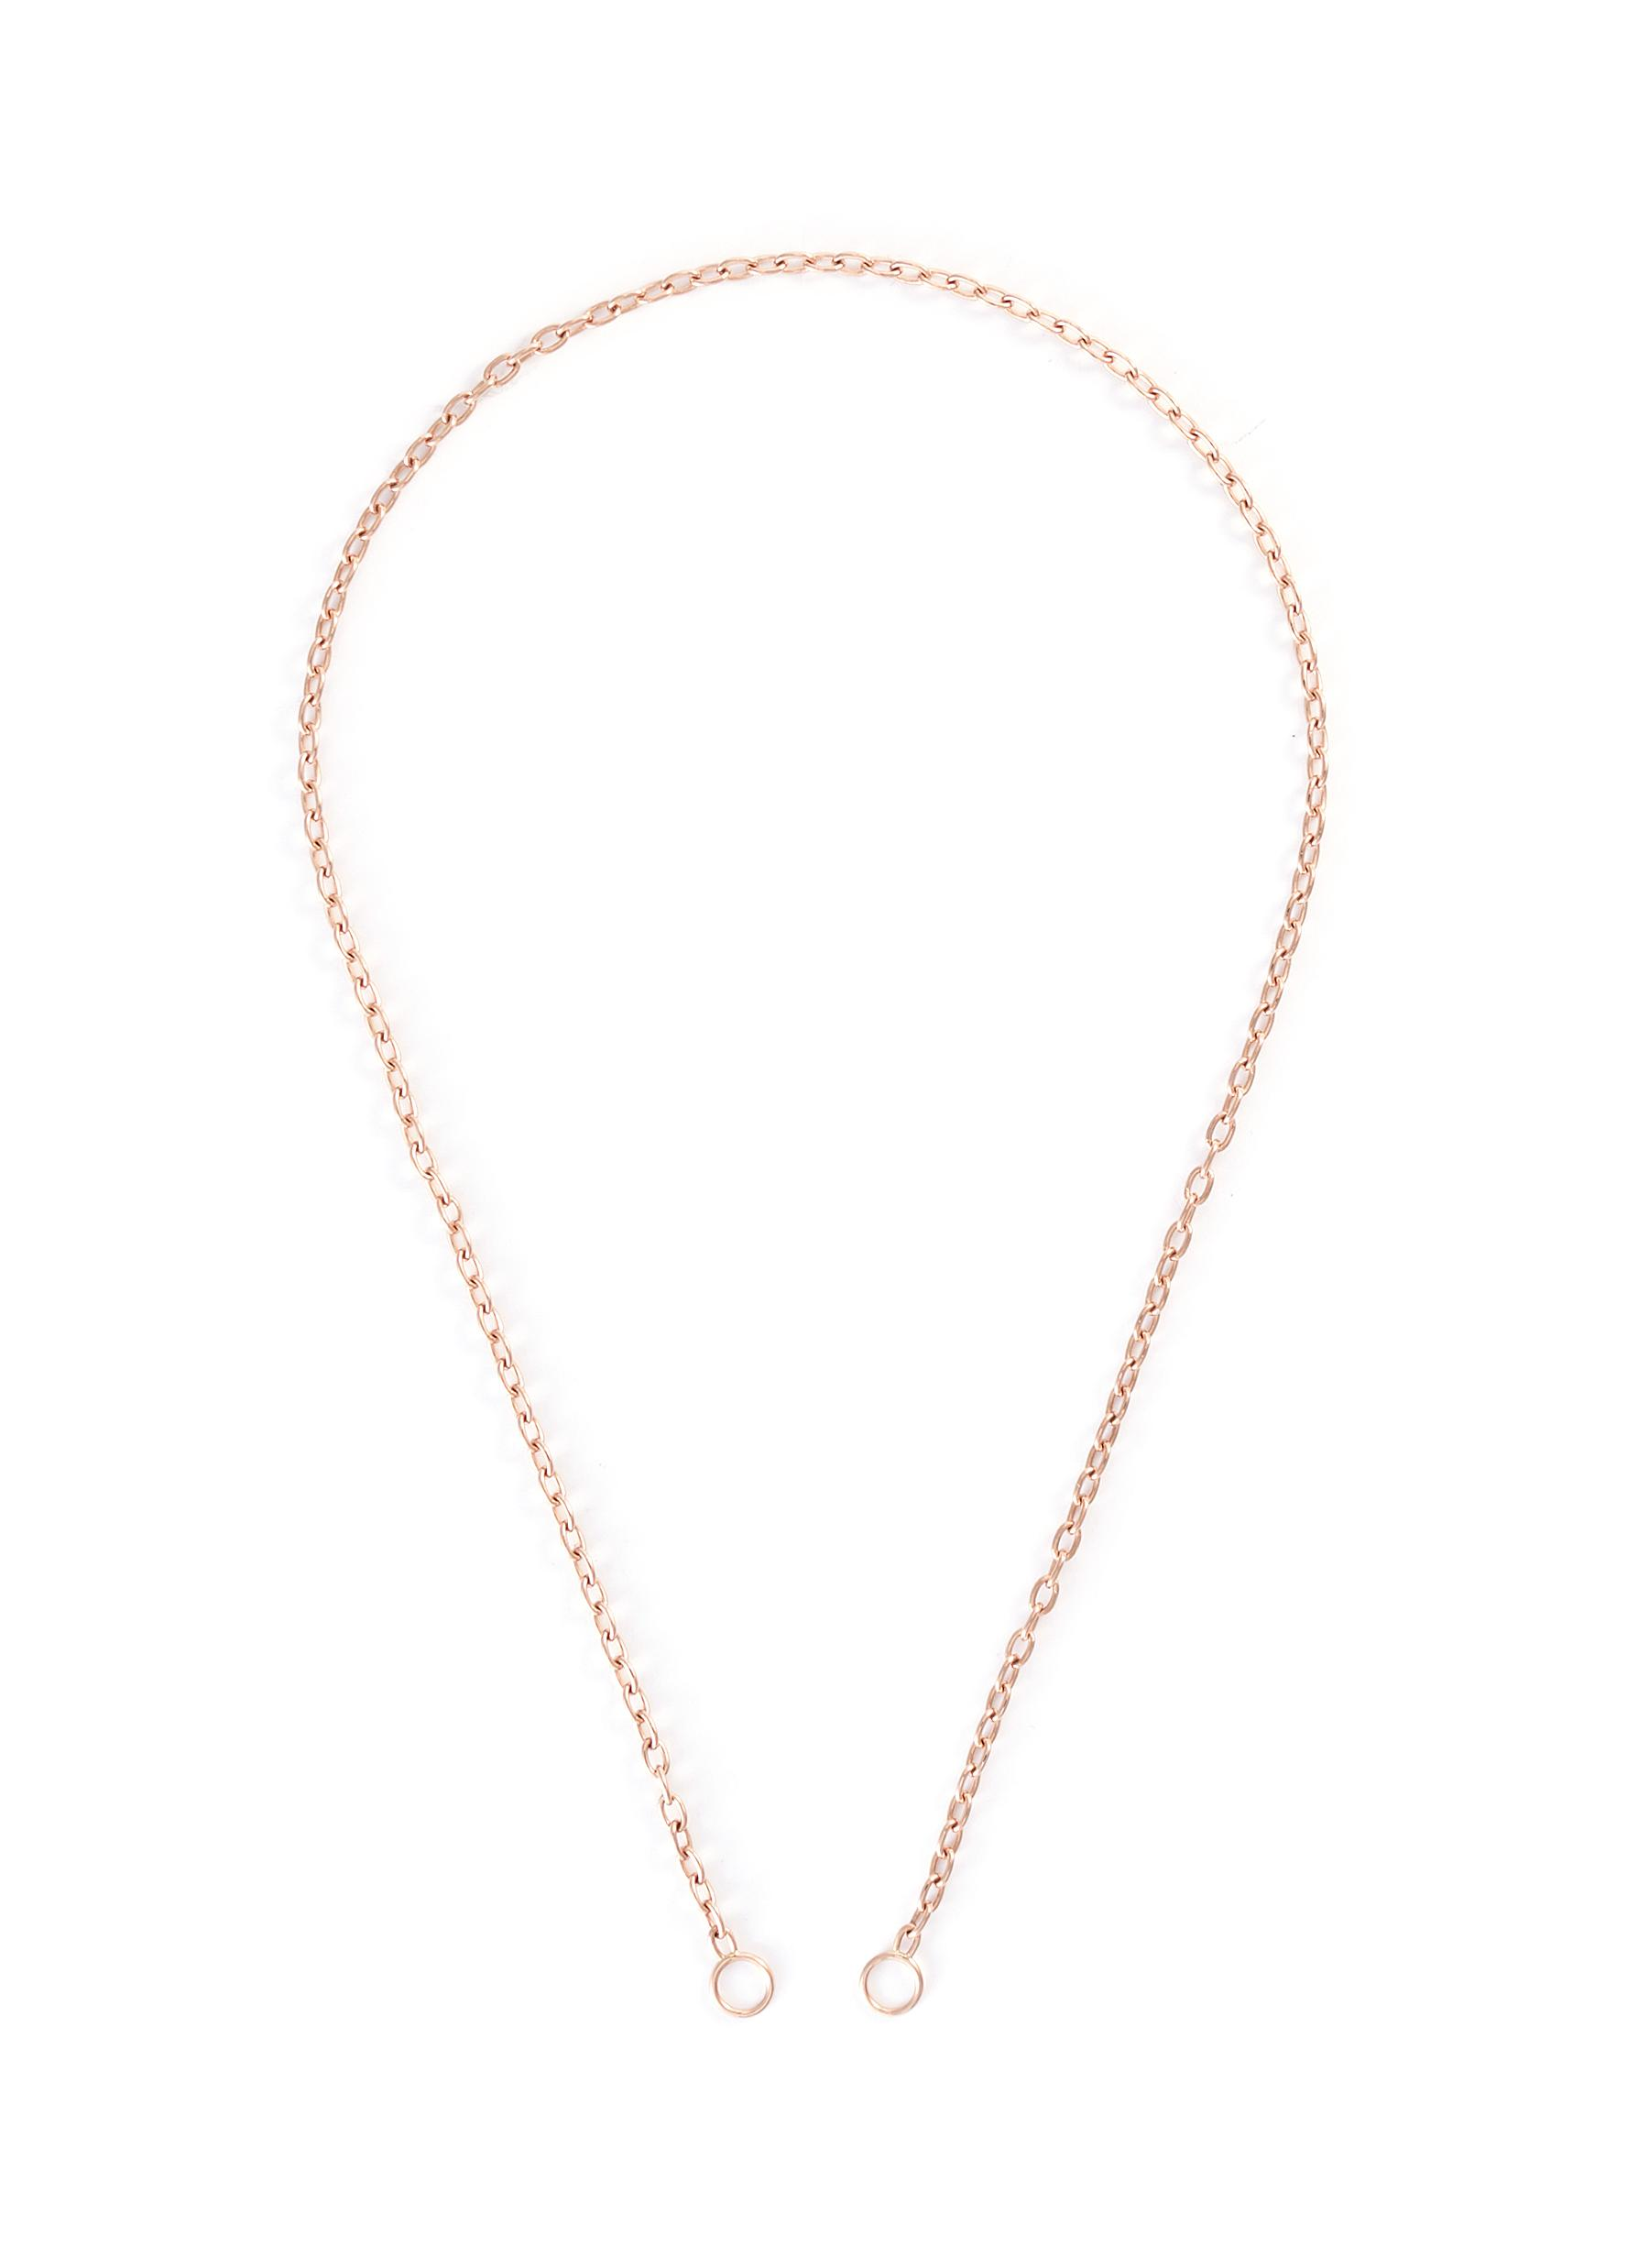 2 loop 14k rose gold pulley chain